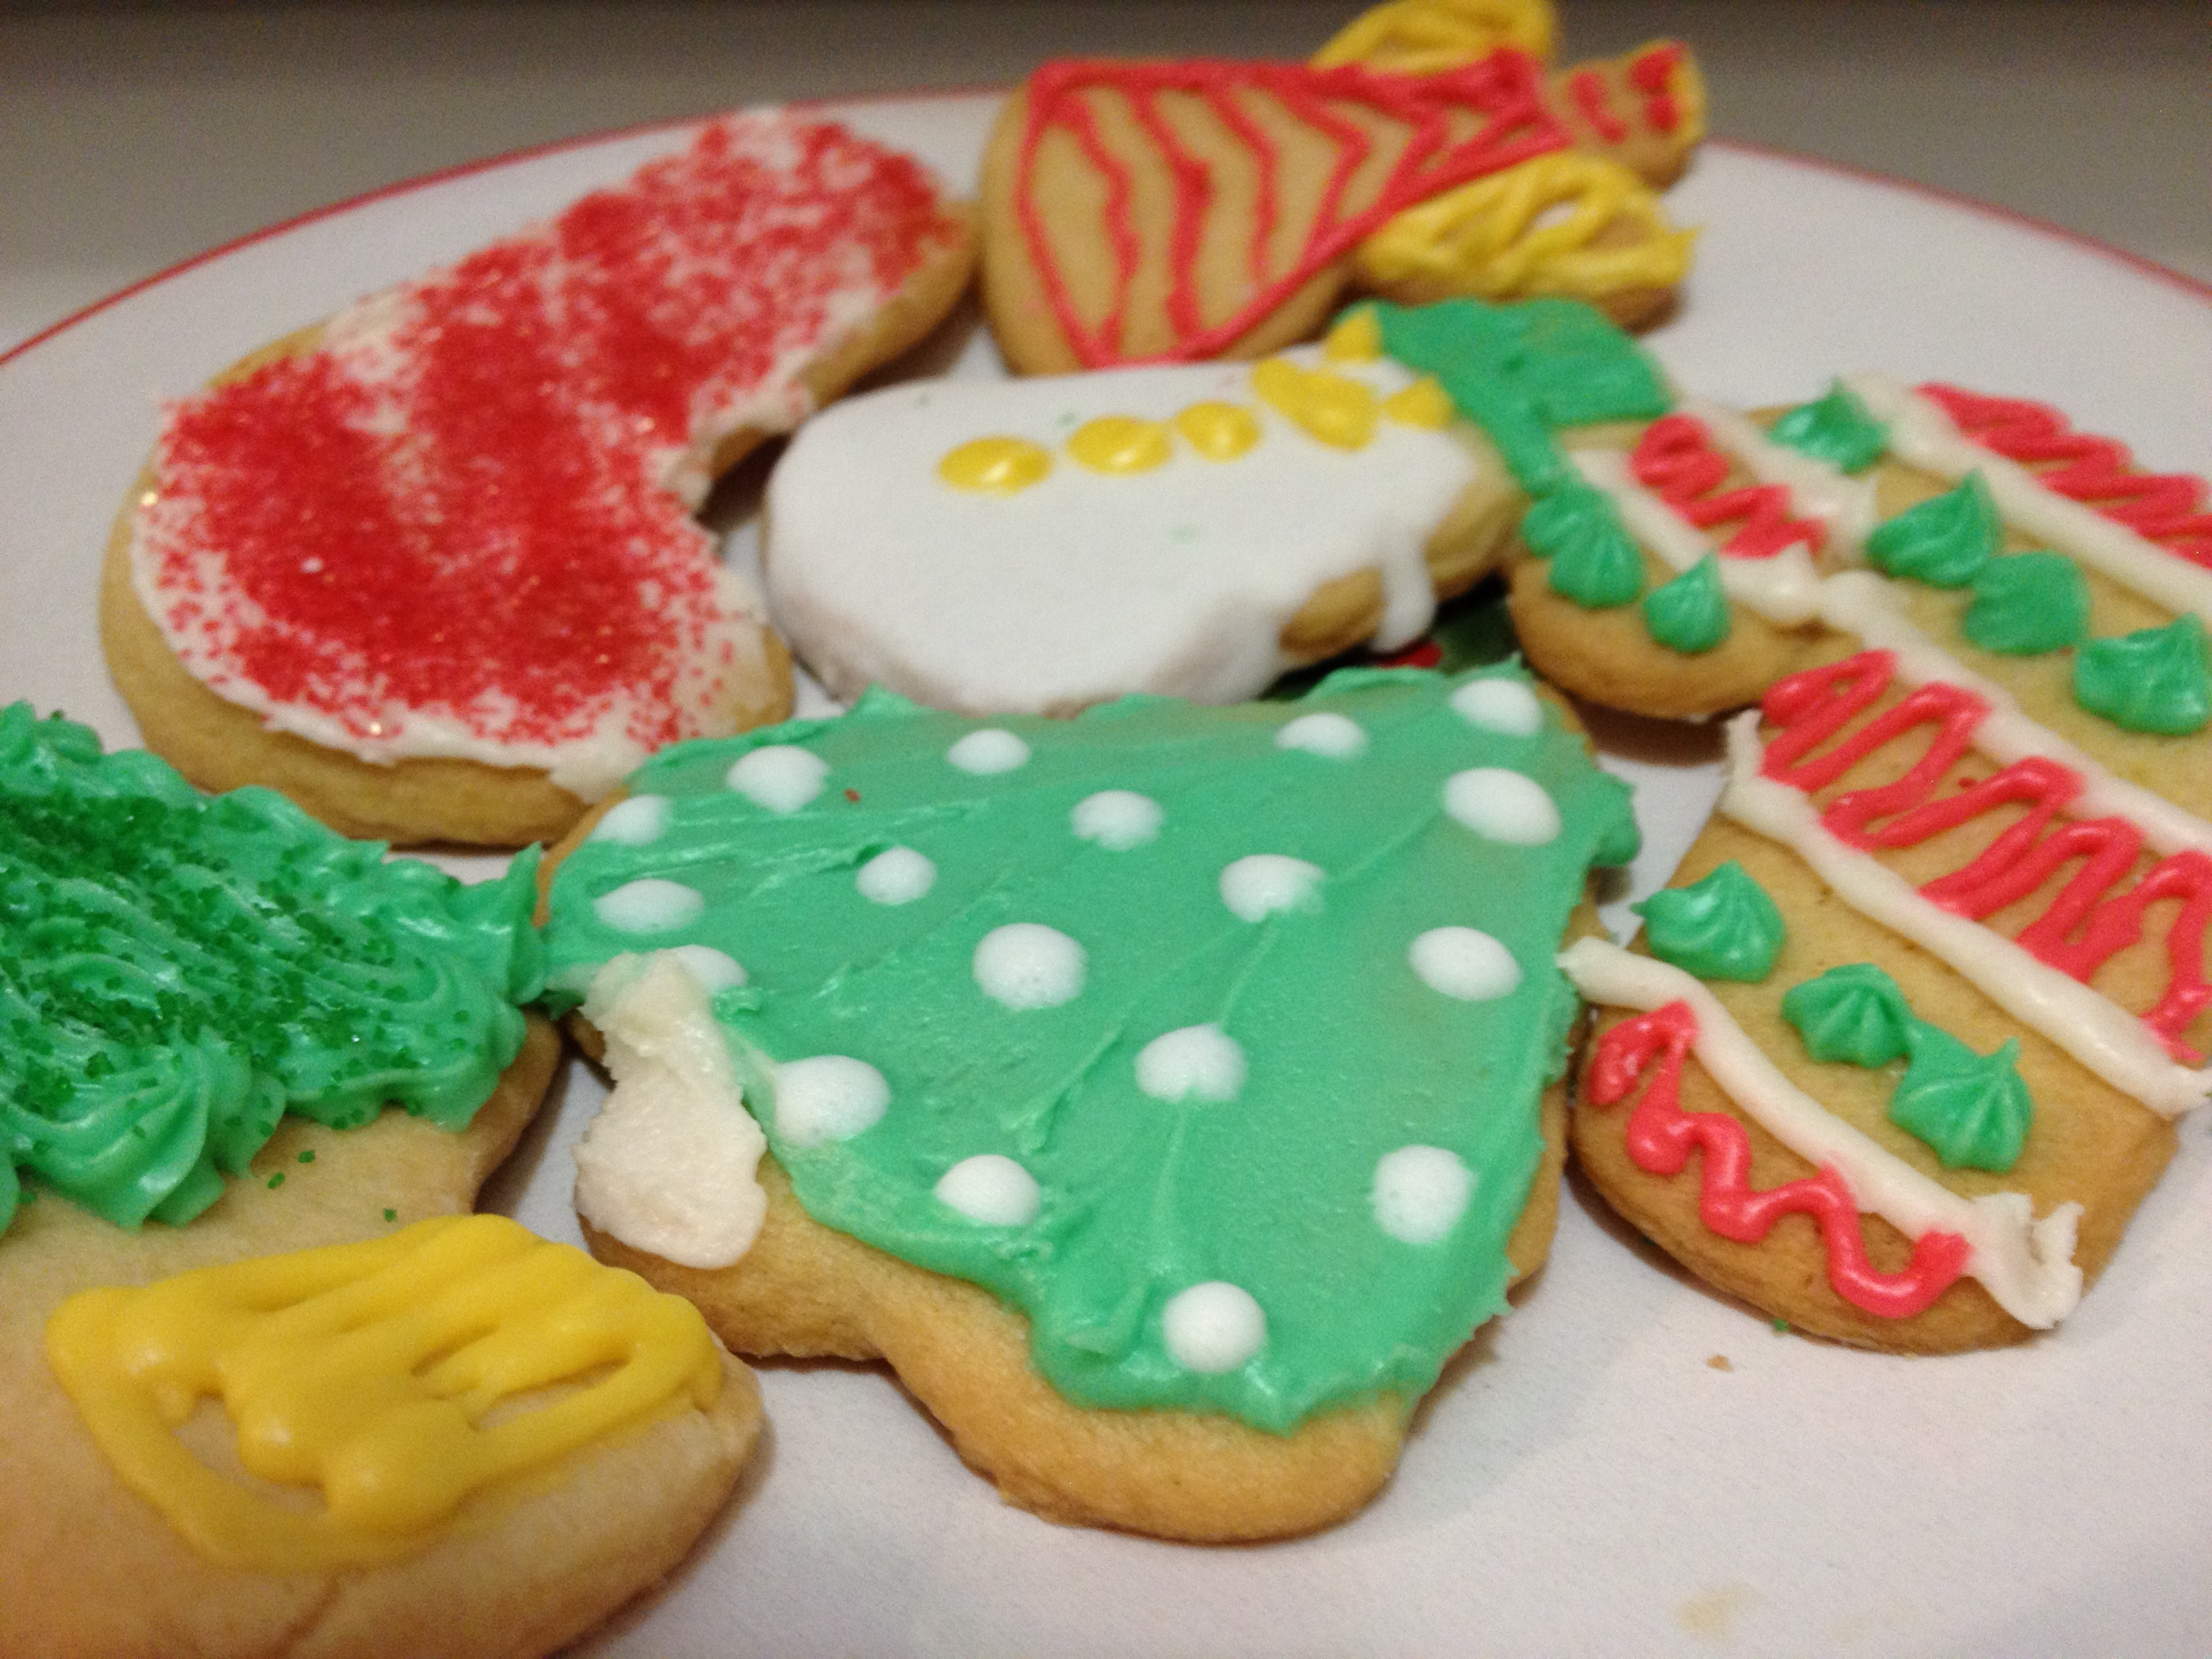 most sugar cookie recipes are made with granulated which i have